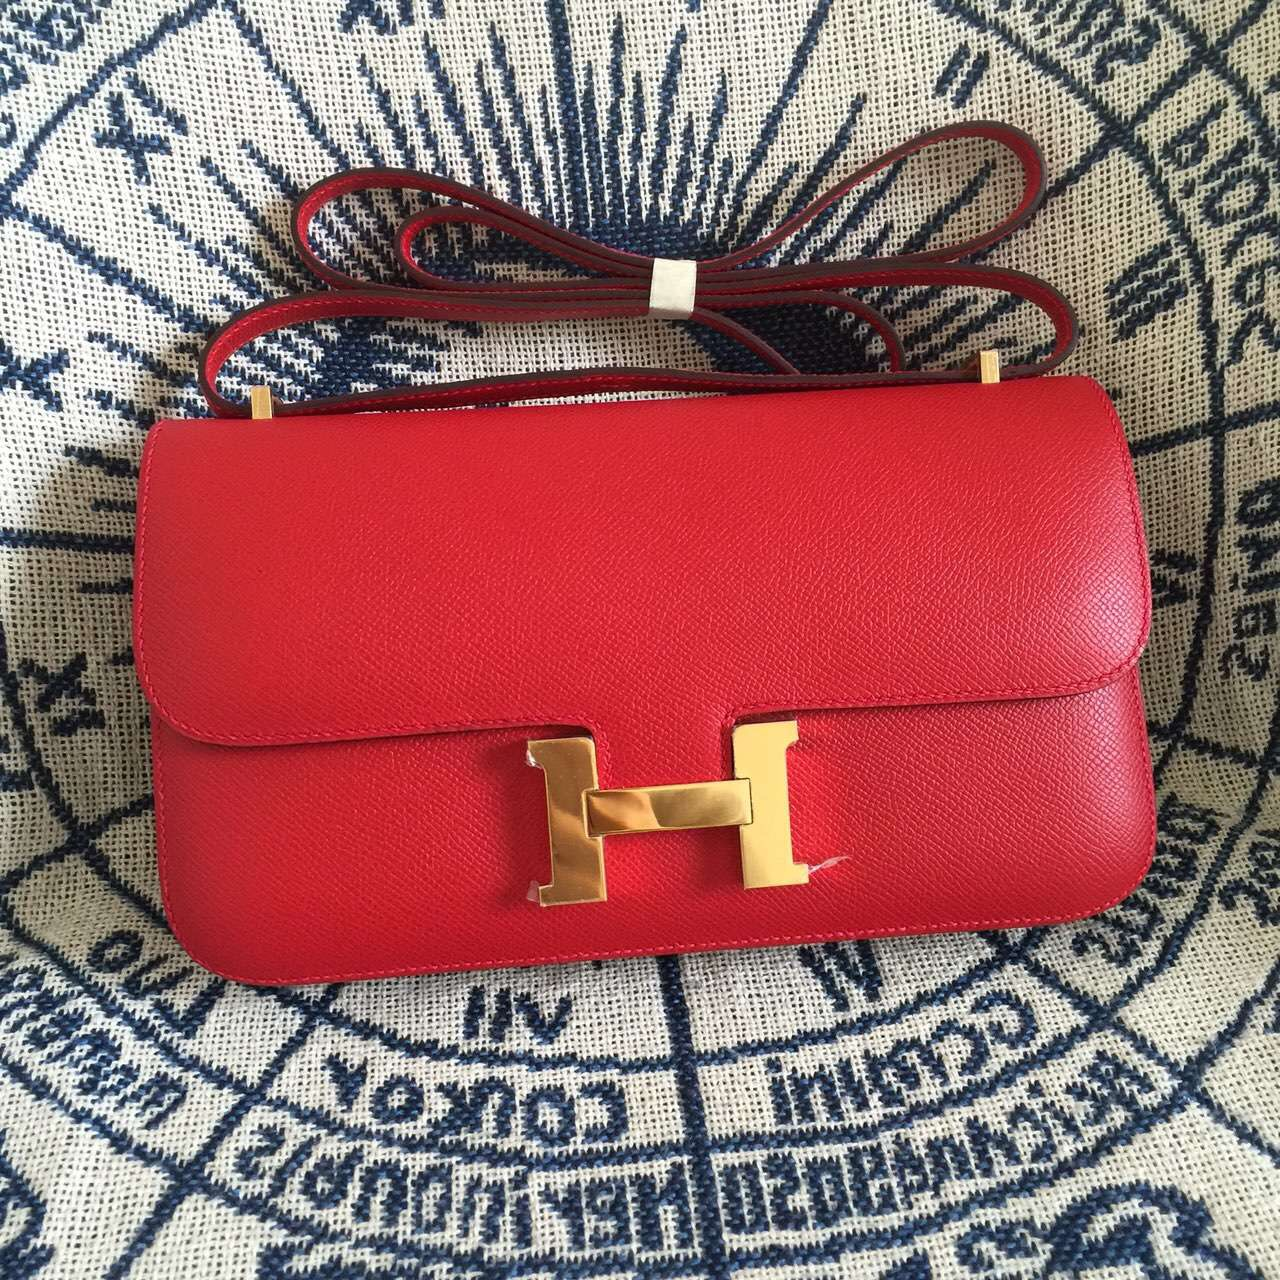 On Sale Hermes Constance Bag Epsom Calfskin Leather in Q5 Chinese Red 26CM